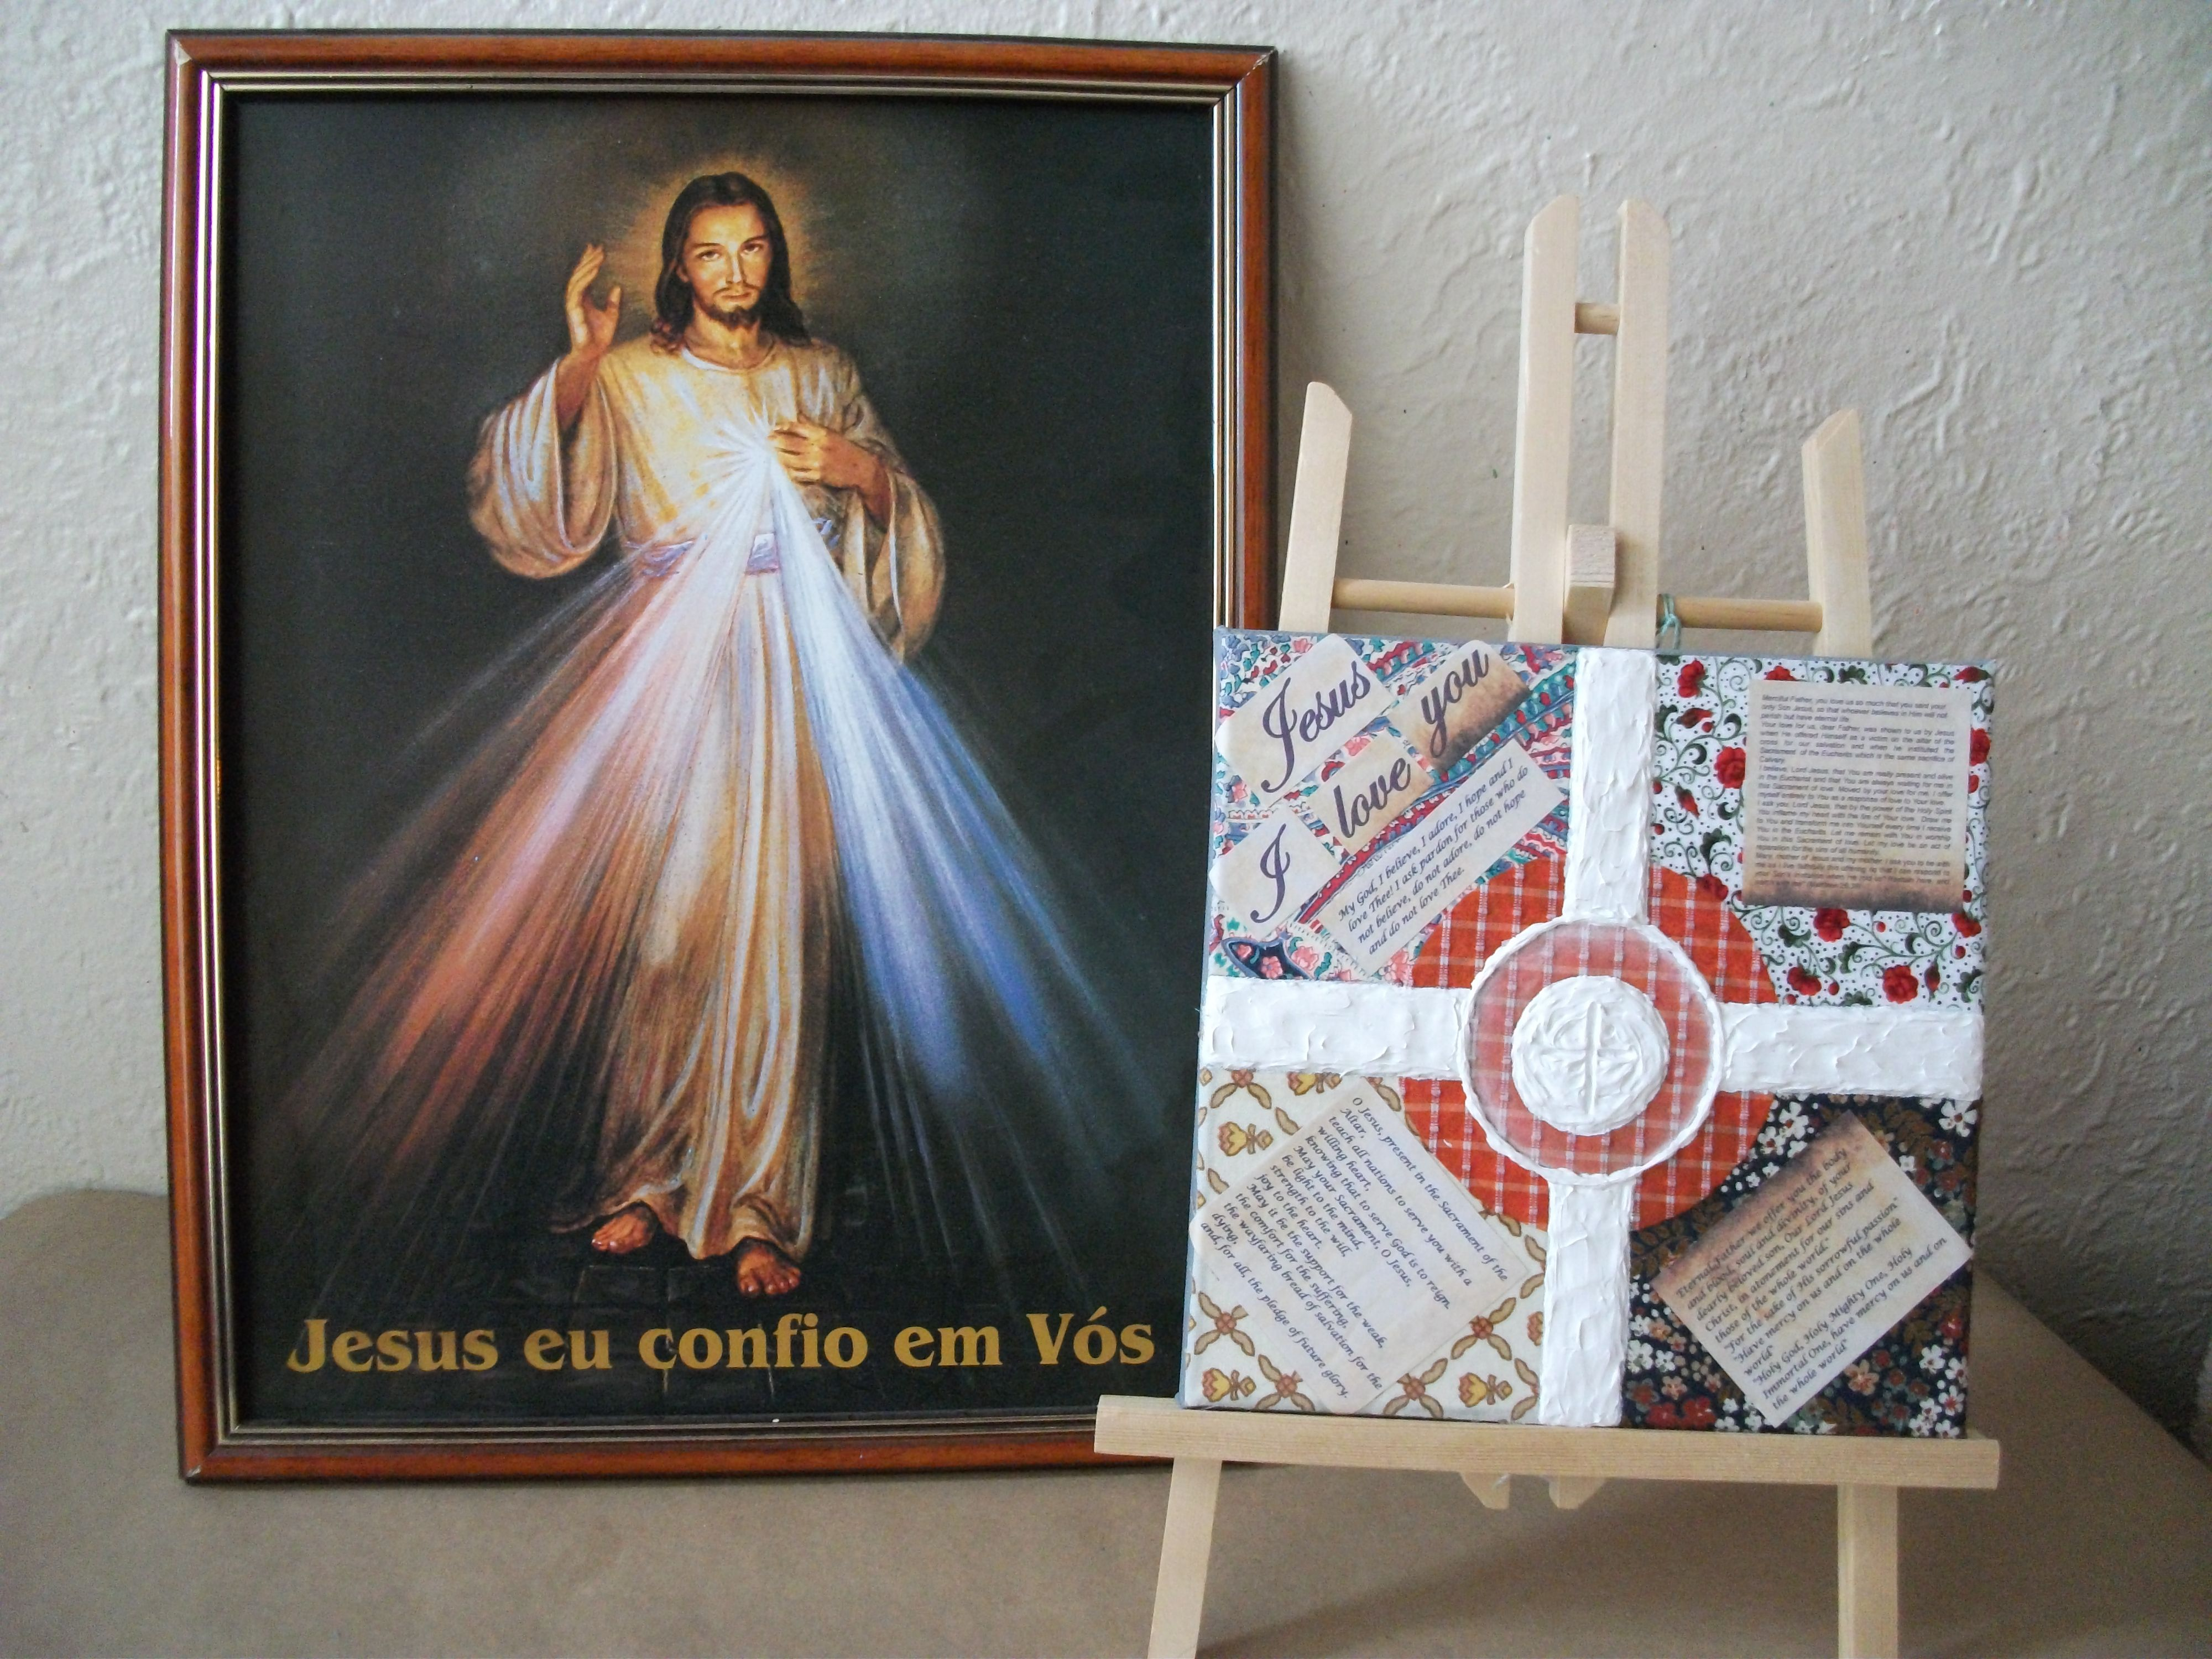 Free Christian Paintings Christian Arts Crafts Christian Art